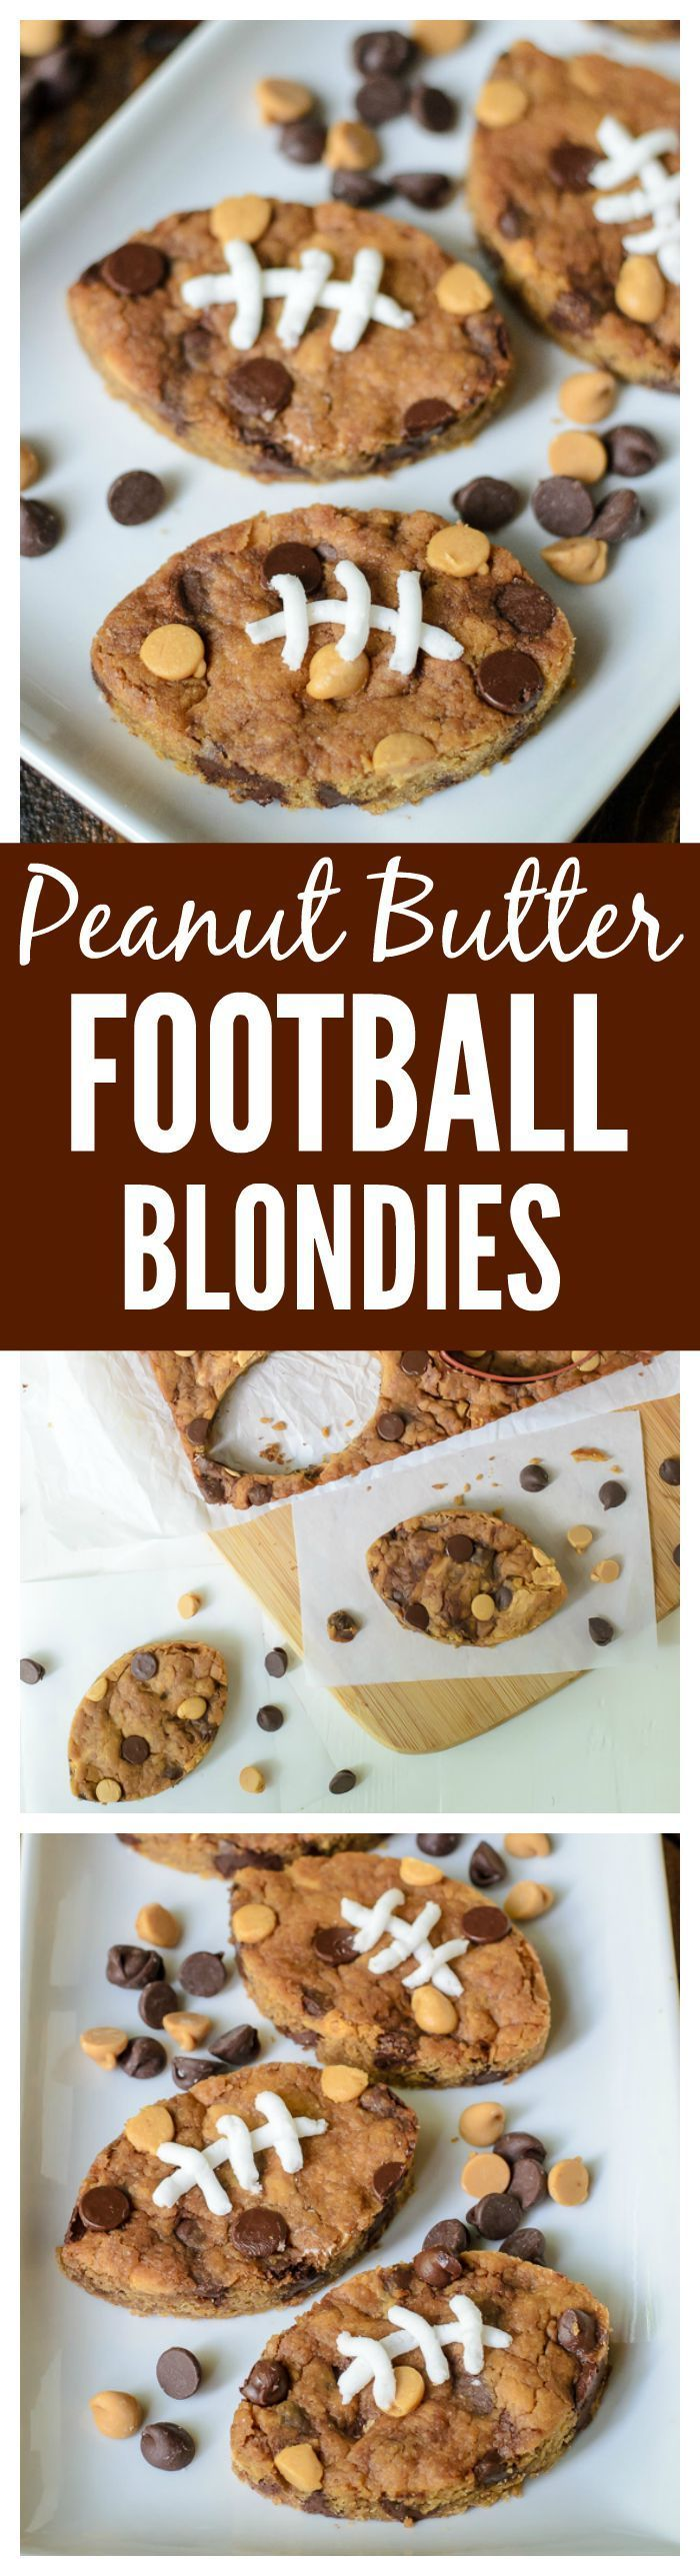 Peanut Butter Football Blondies with Chocolate Chips. Soft, chewy and so cute for football parties and tailgates. Pinning this for the super bowl too!